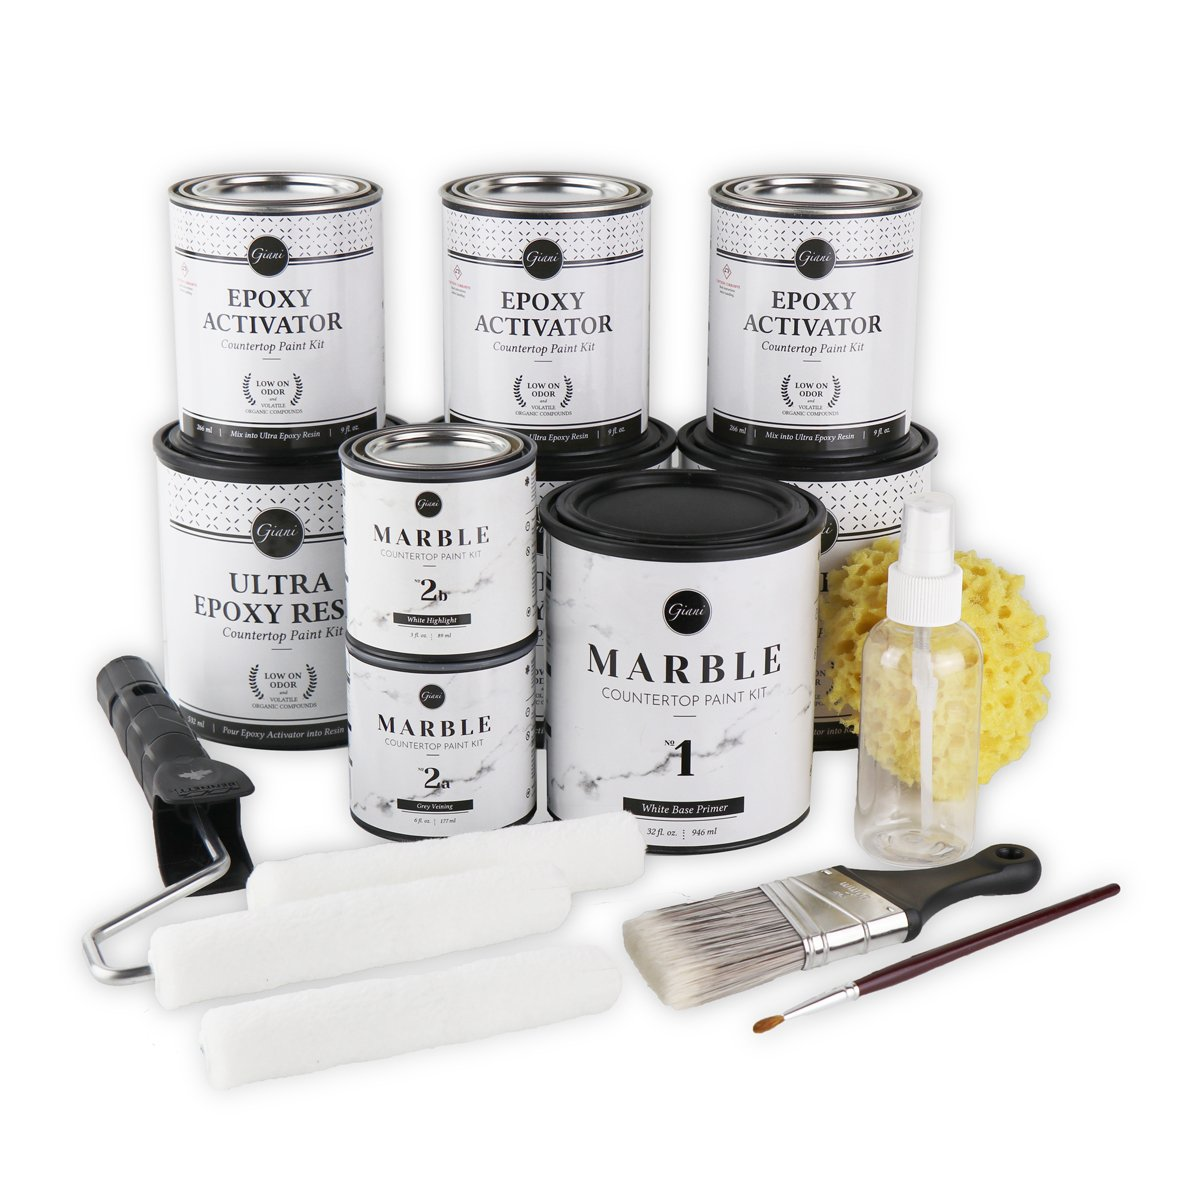 Giani Marble Countertop Paint Kit includes